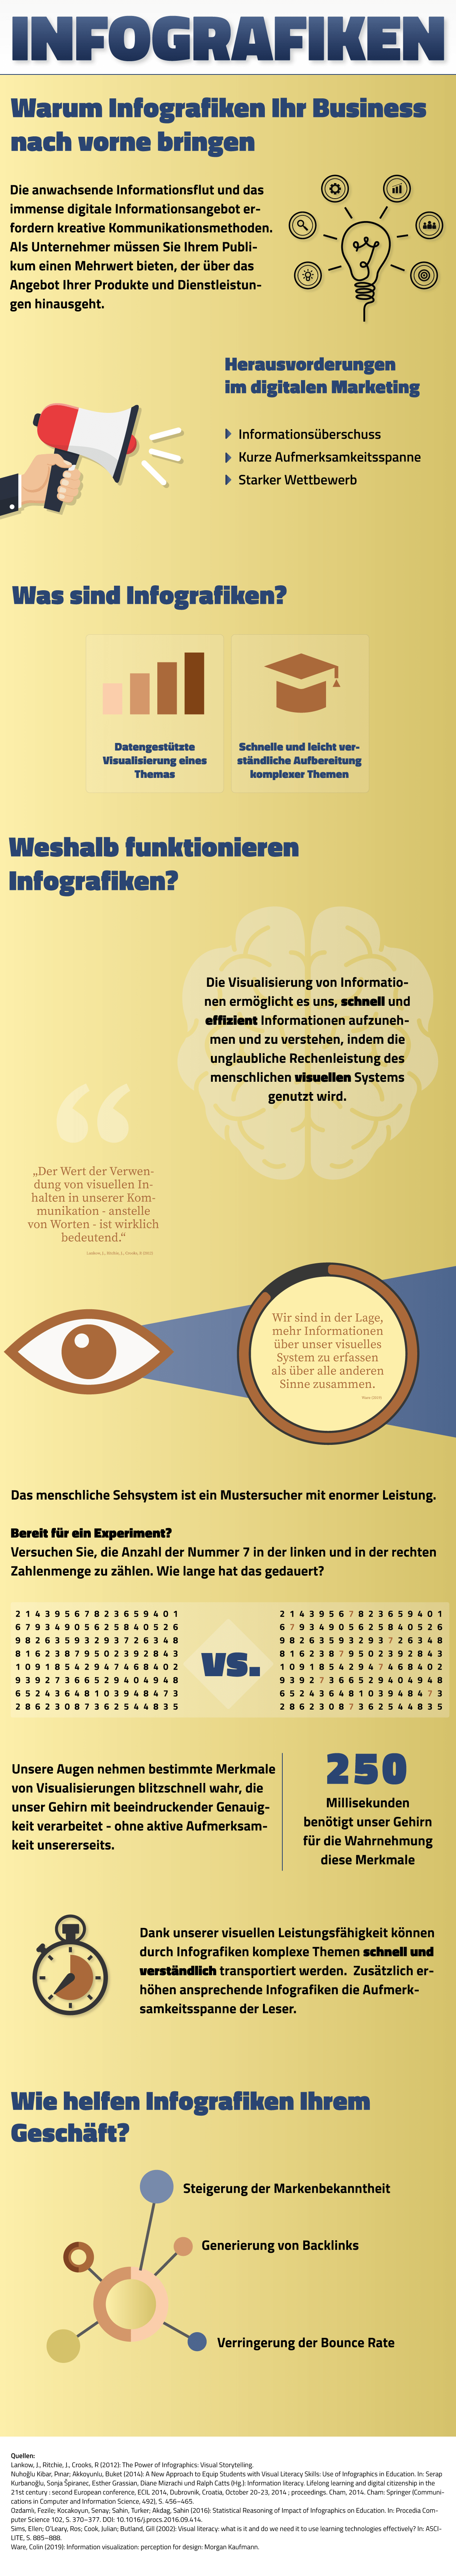 Infografiken sind eine bewährte Content Marketing Strategie